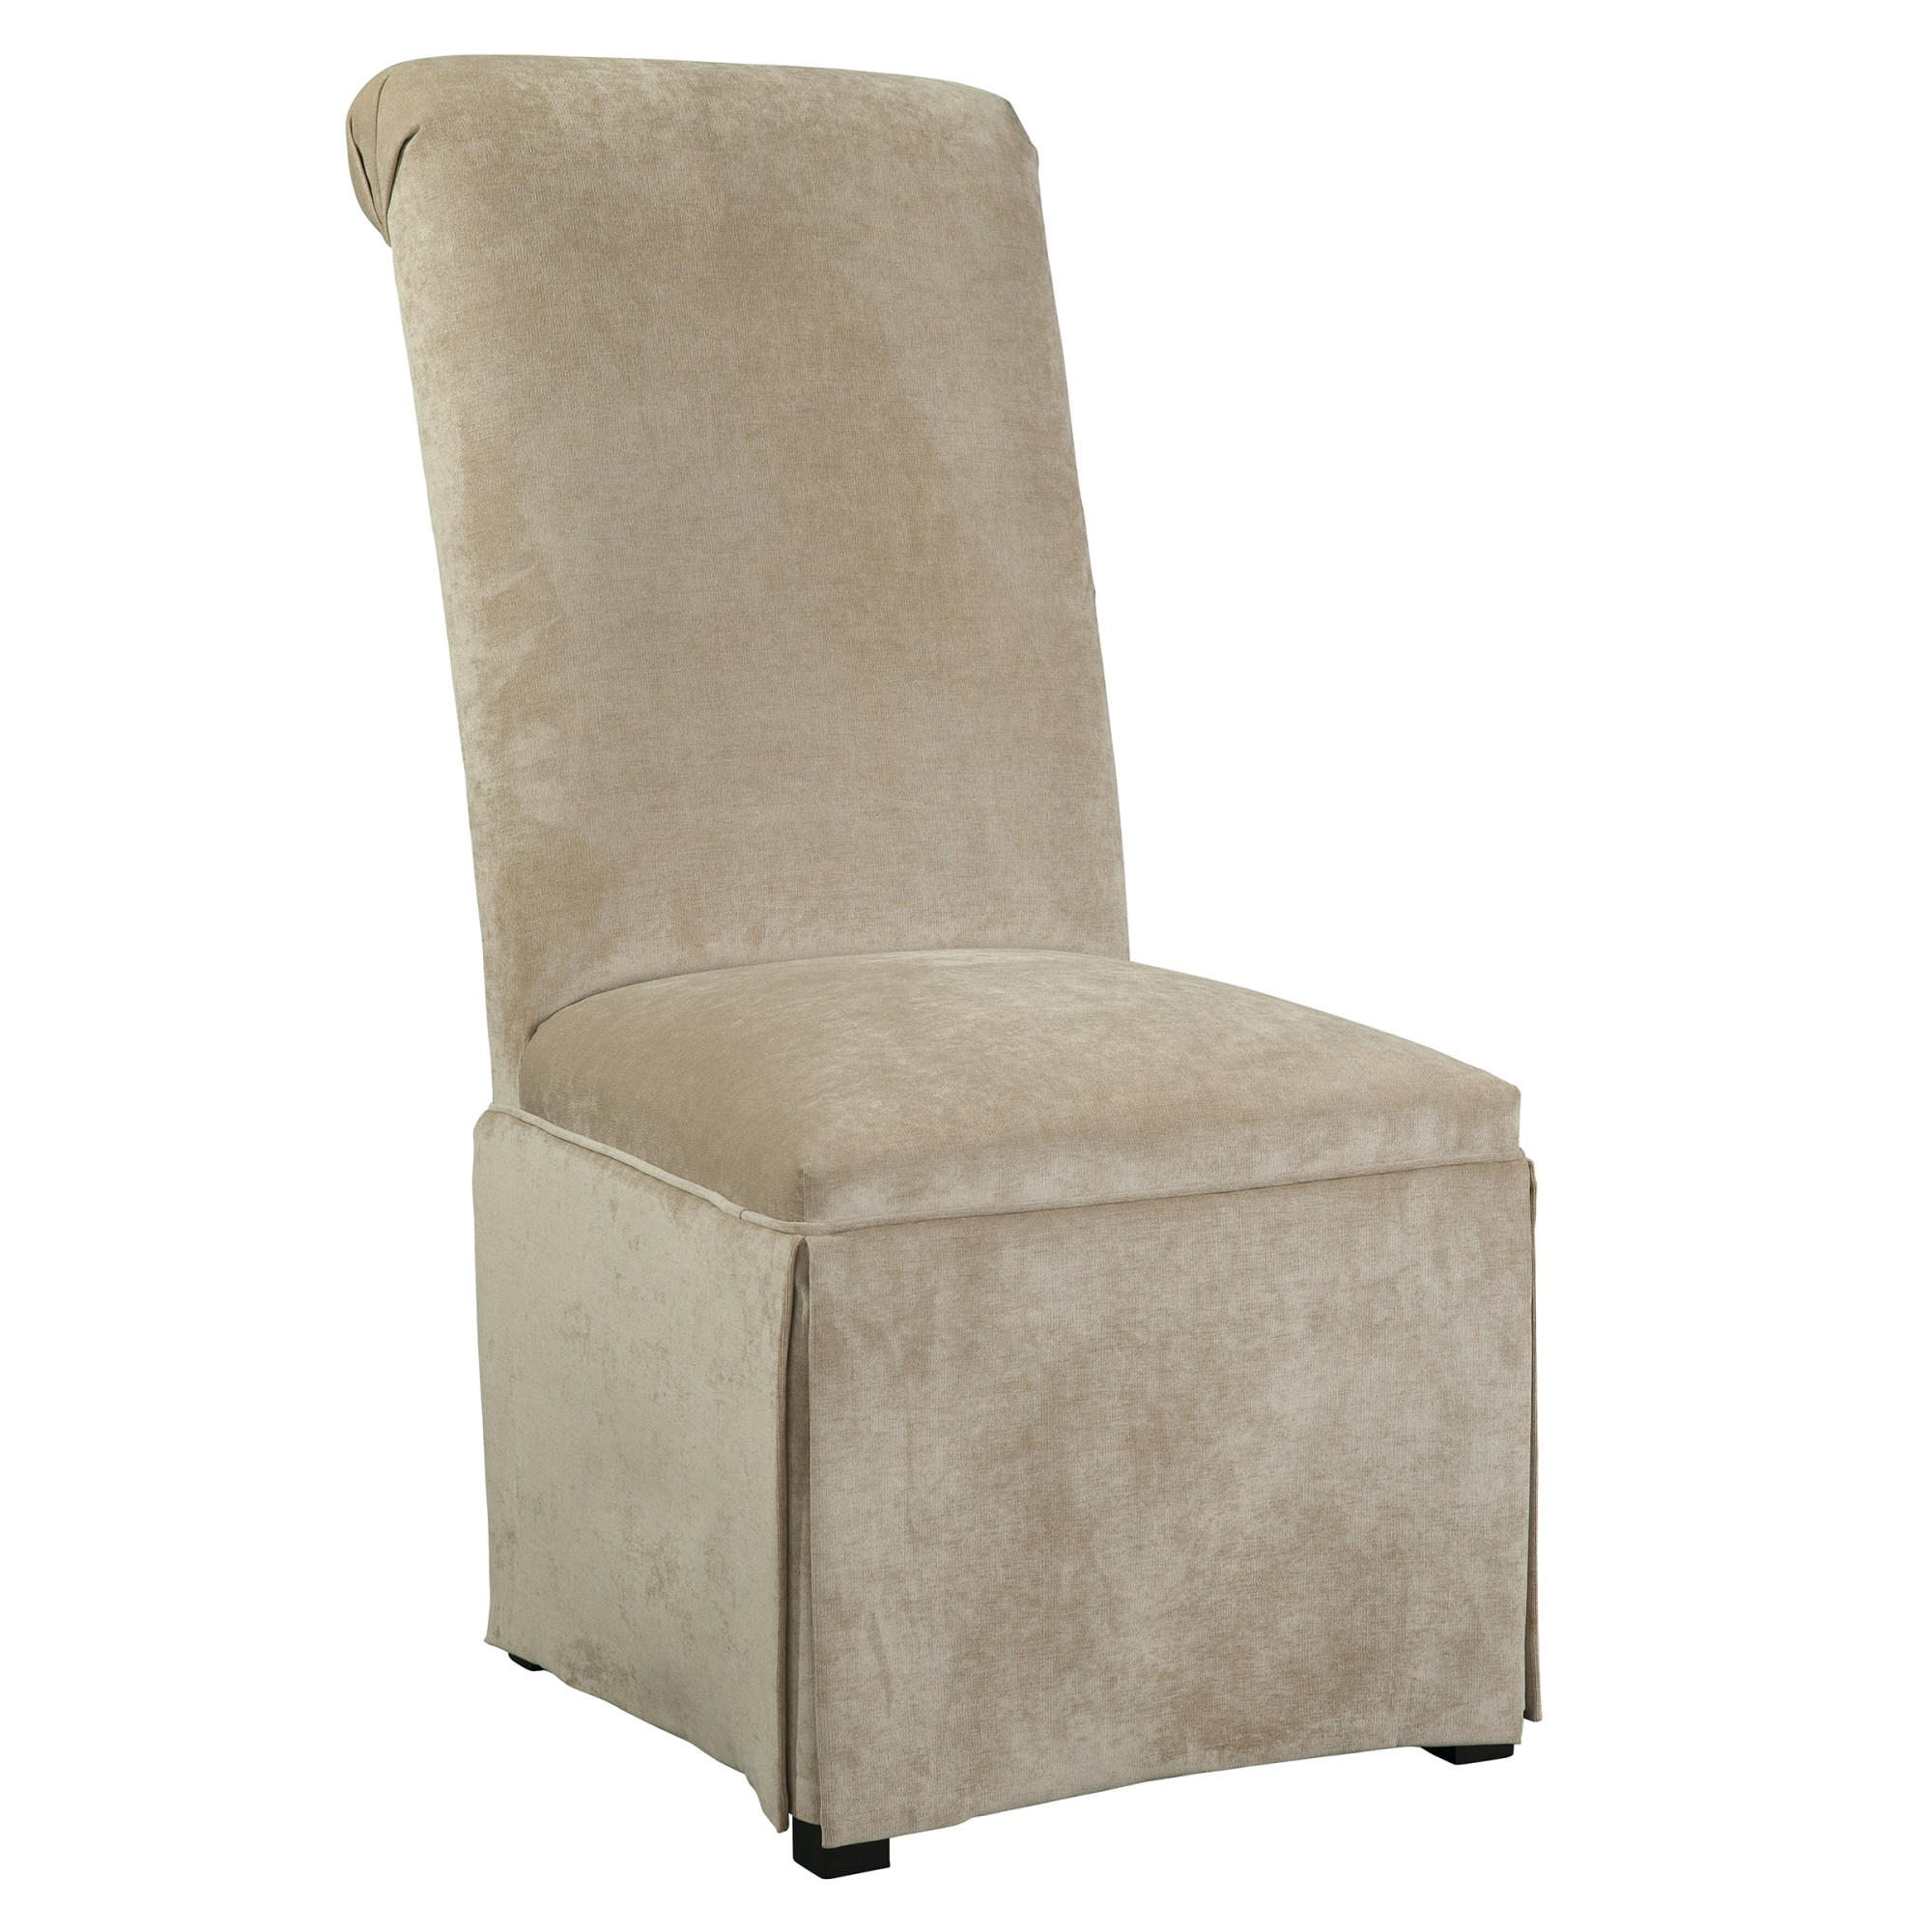 Image for 7258 Susanna Dining Chair from Hekman Official Website